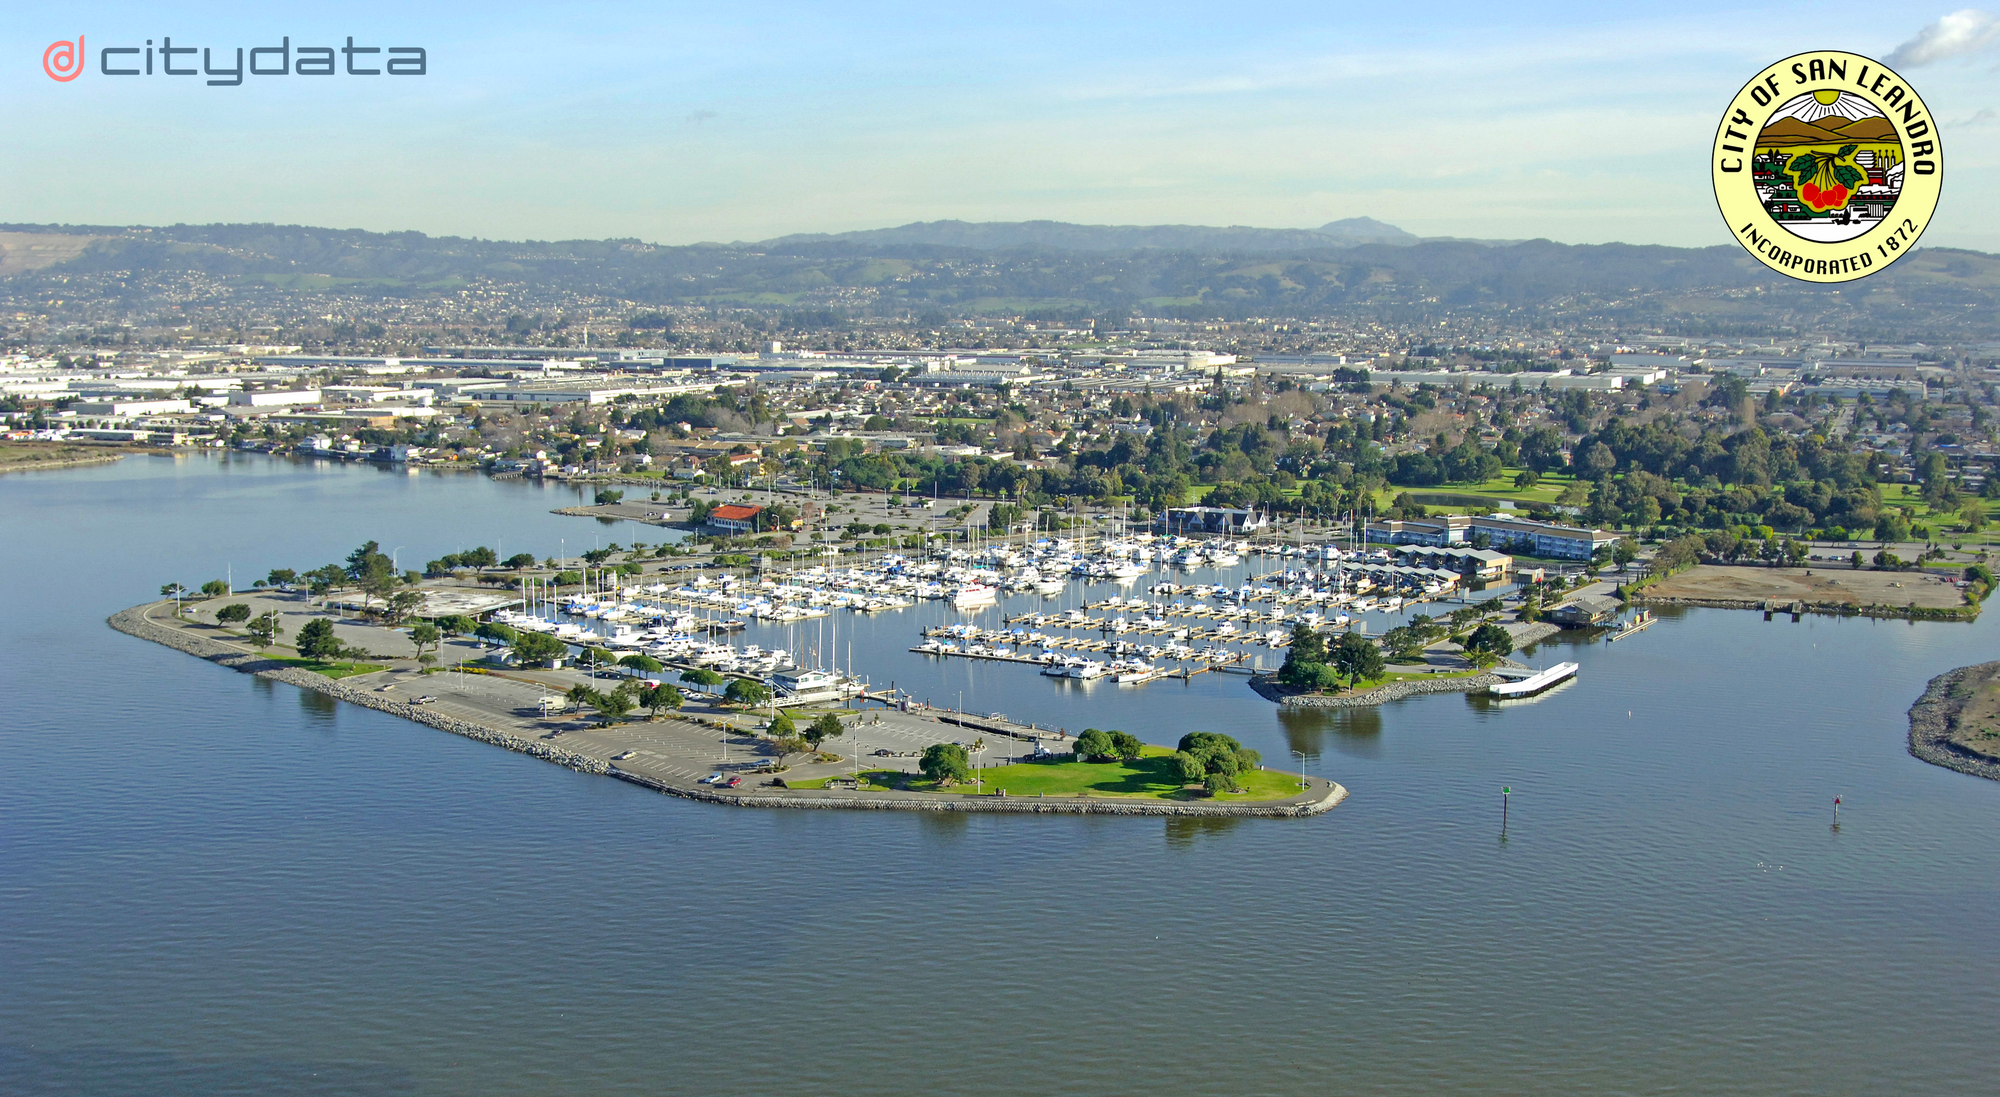 Unified data analytics dashboard for the City of San Leandro, California